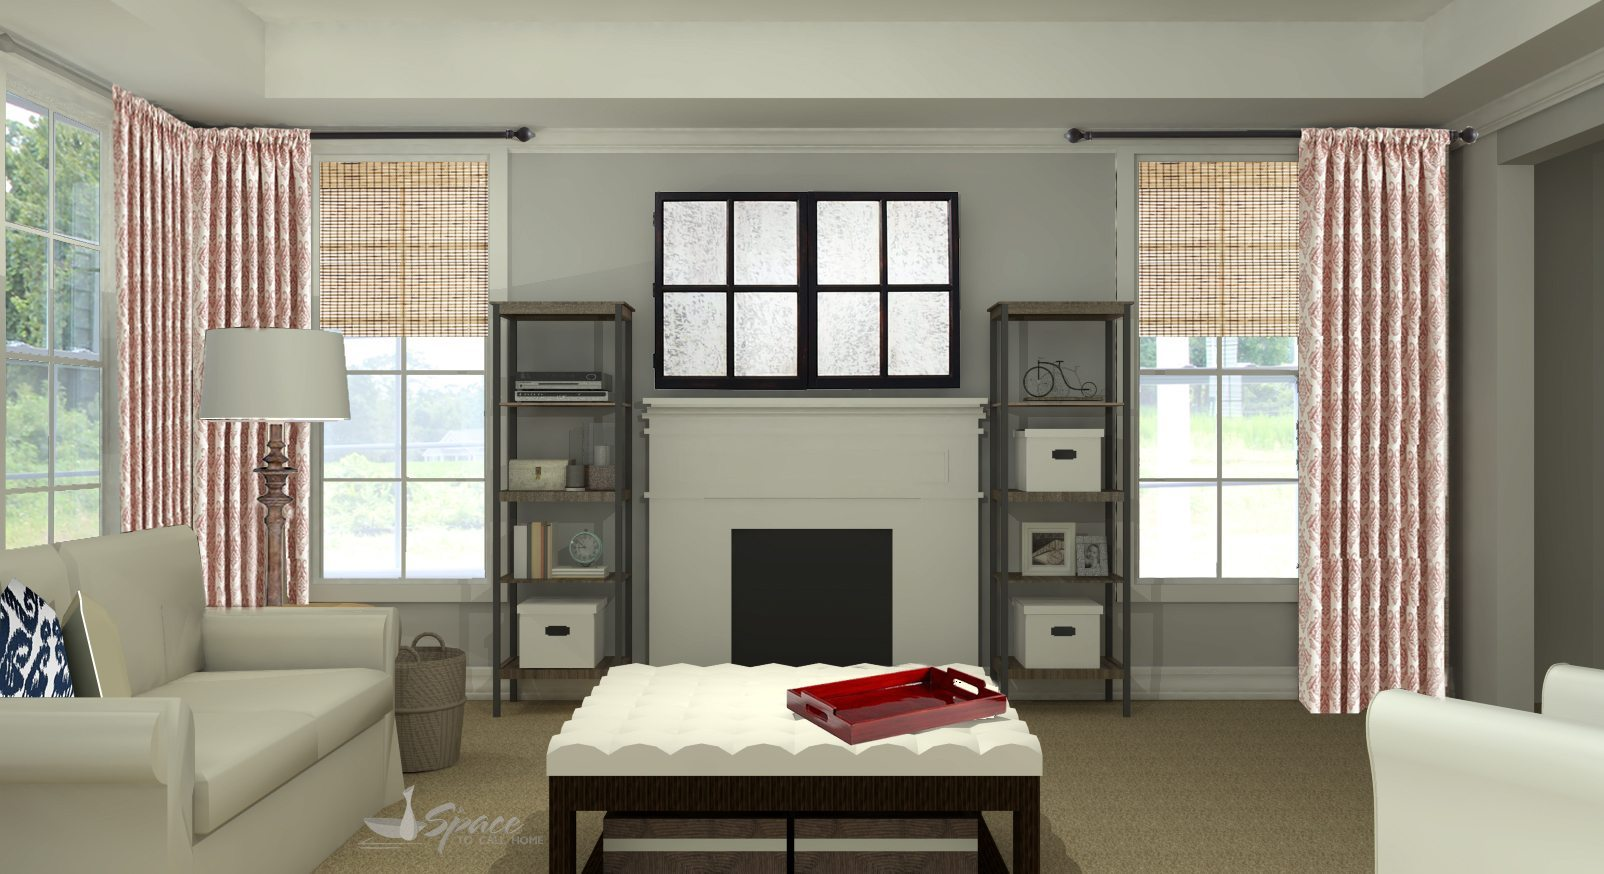 virtual room design create your dream room a space to pics photos build and design your own virtual room